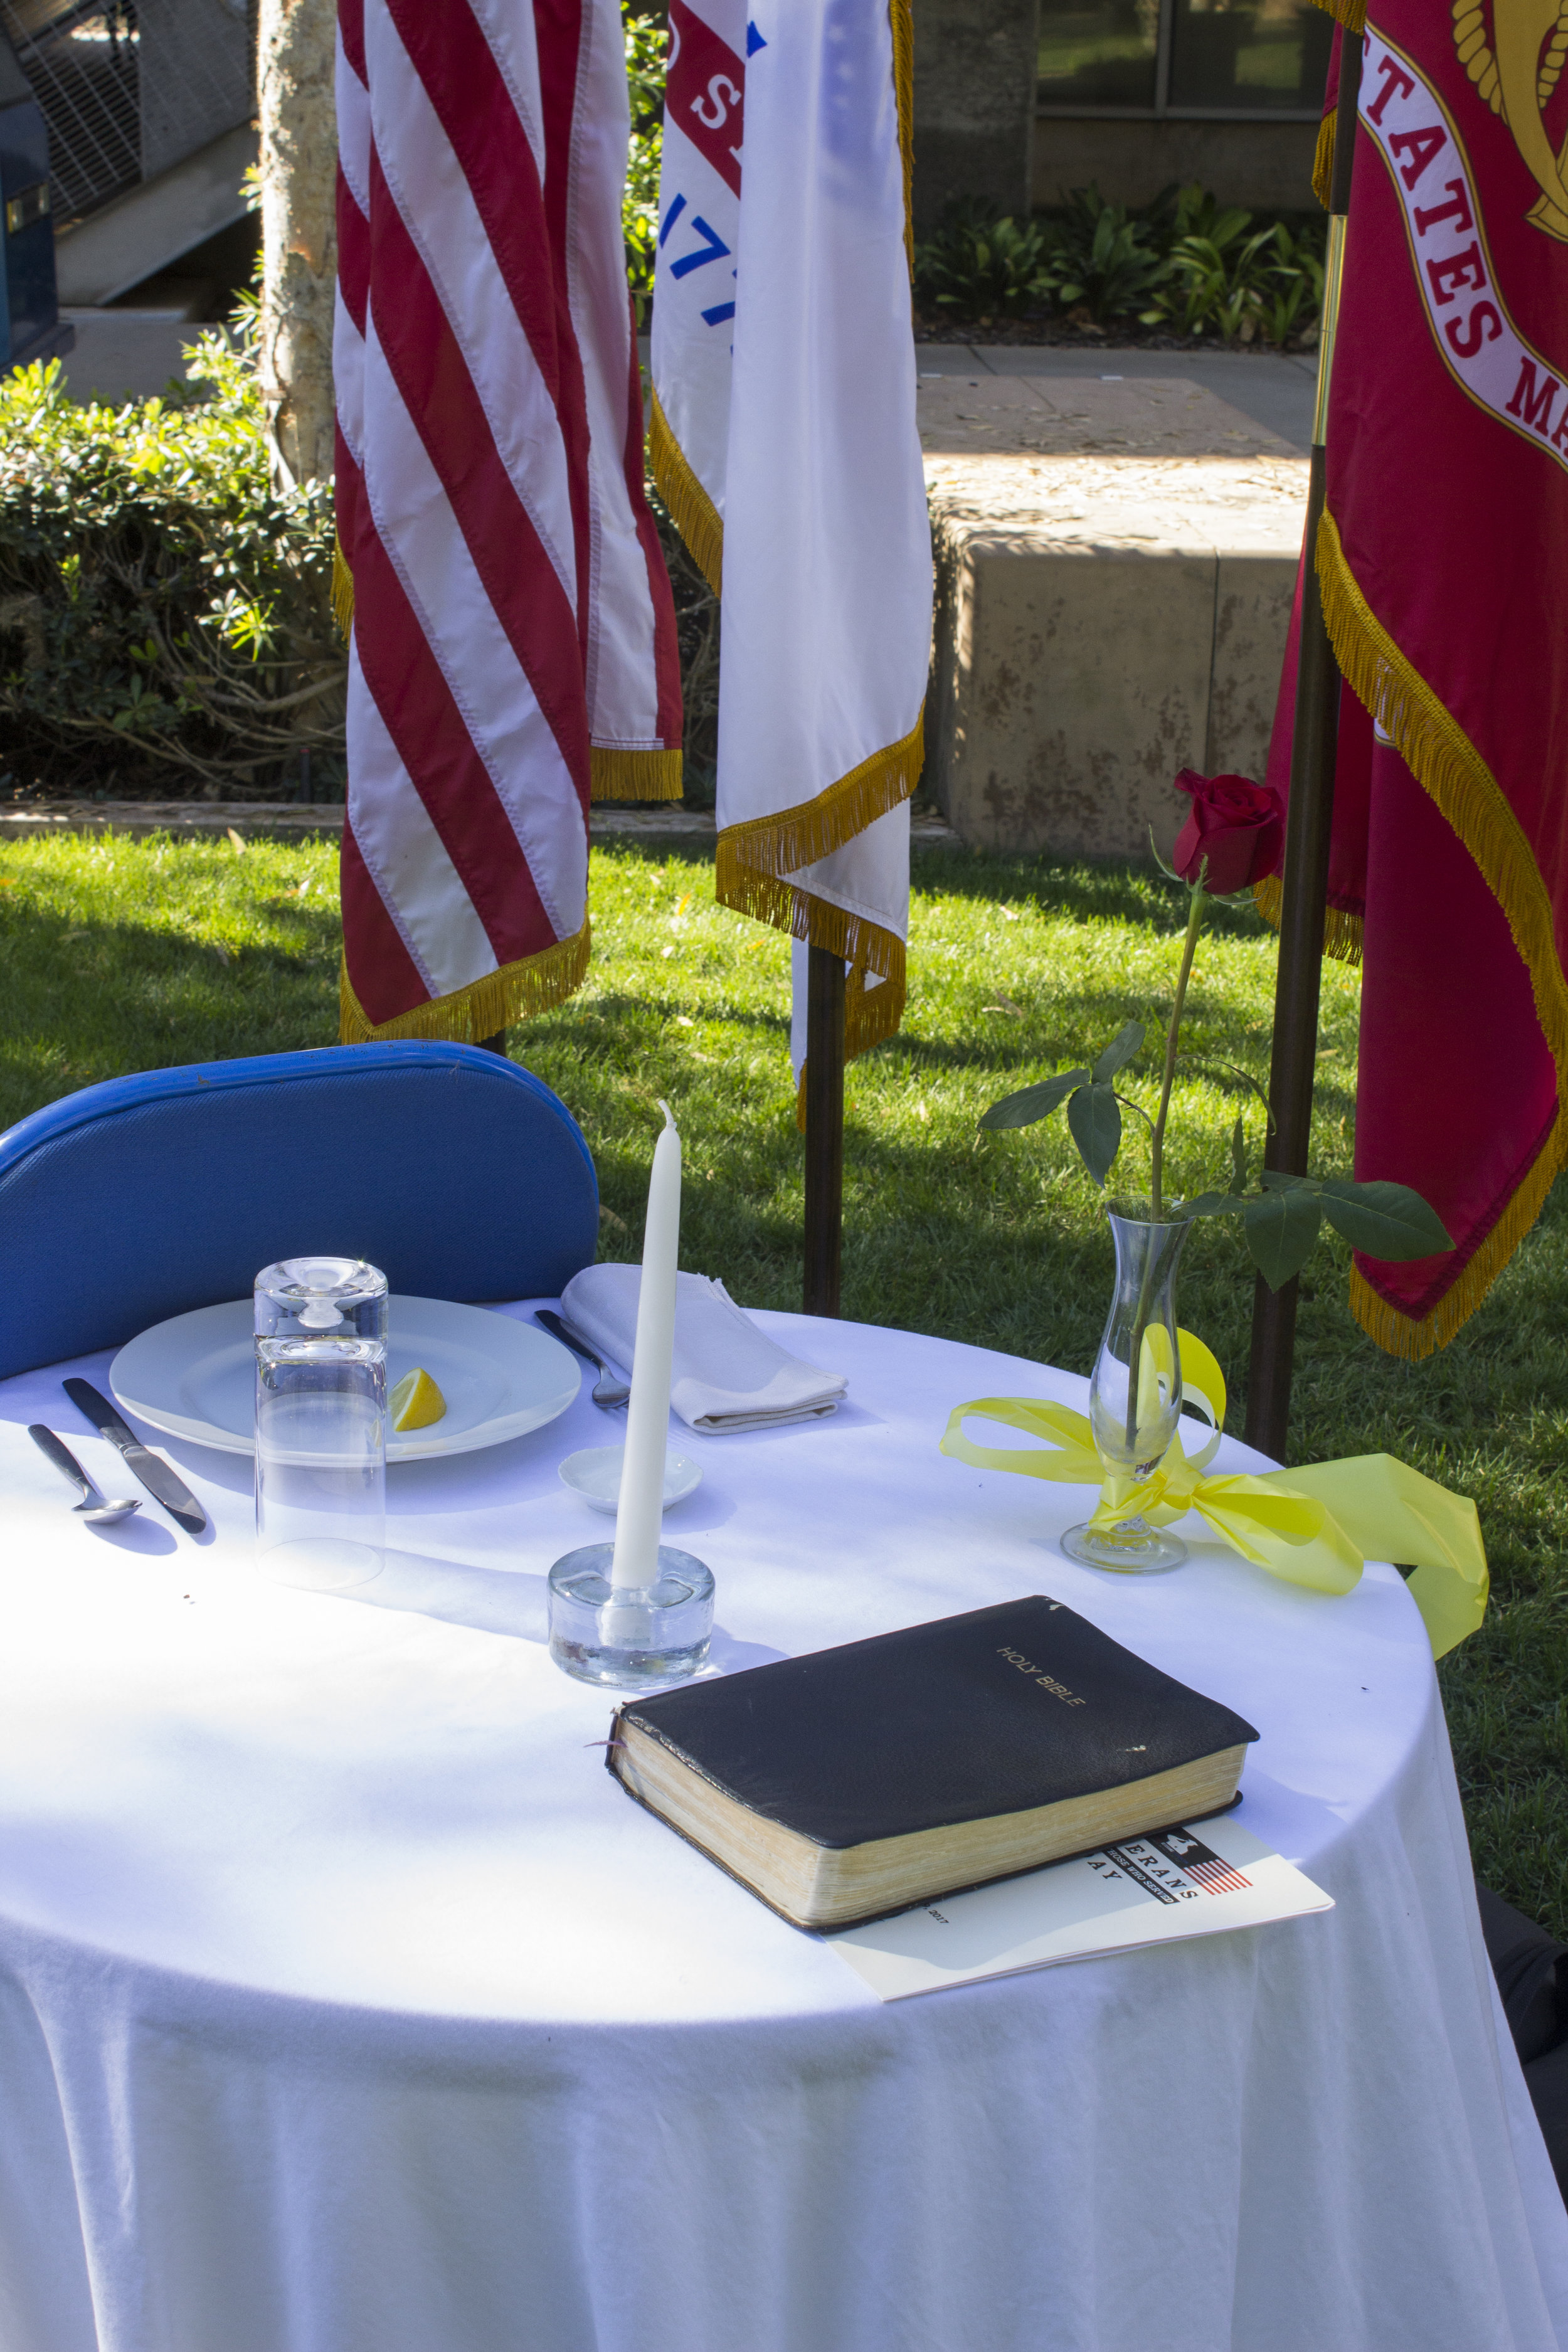 """The Missing Man Table representing fallen, missing, or imprisoned military service-members is on display during the ceremony. During the Veterans Day """"Honoring Those Who Served"""" at Santa Monica College Main Campus, by the quad, Santa Monica, Calif. On Thursday Nov.9, 2017. Photo by Emeline Moquillon."""